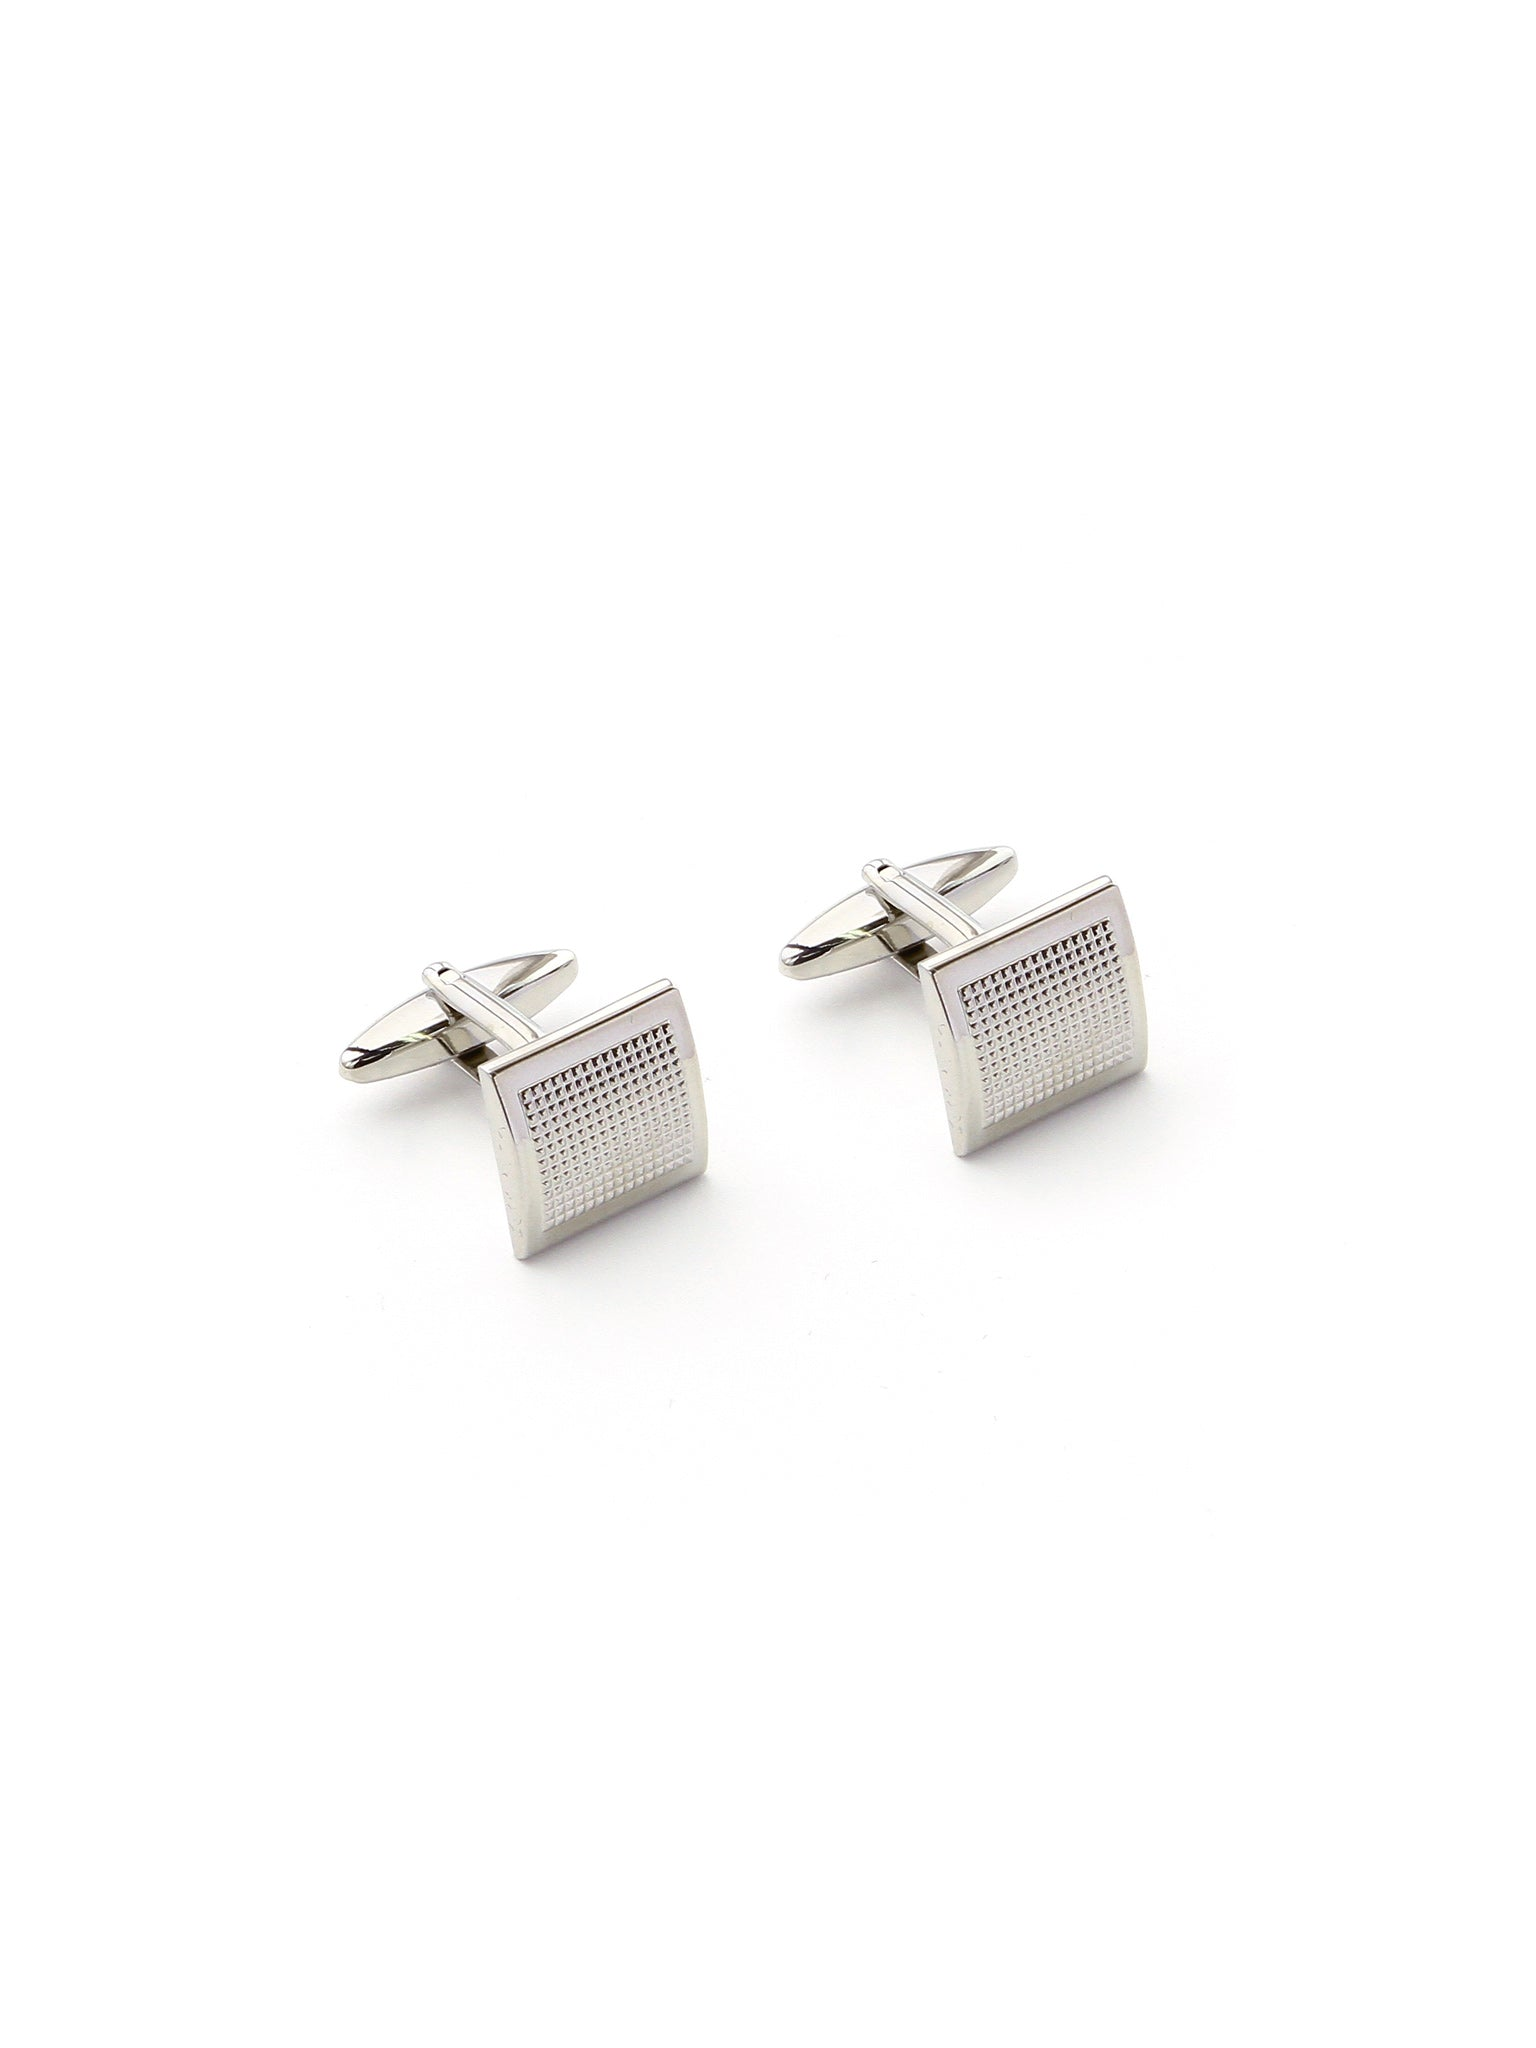 Square Rhodium Plated Cufflinks